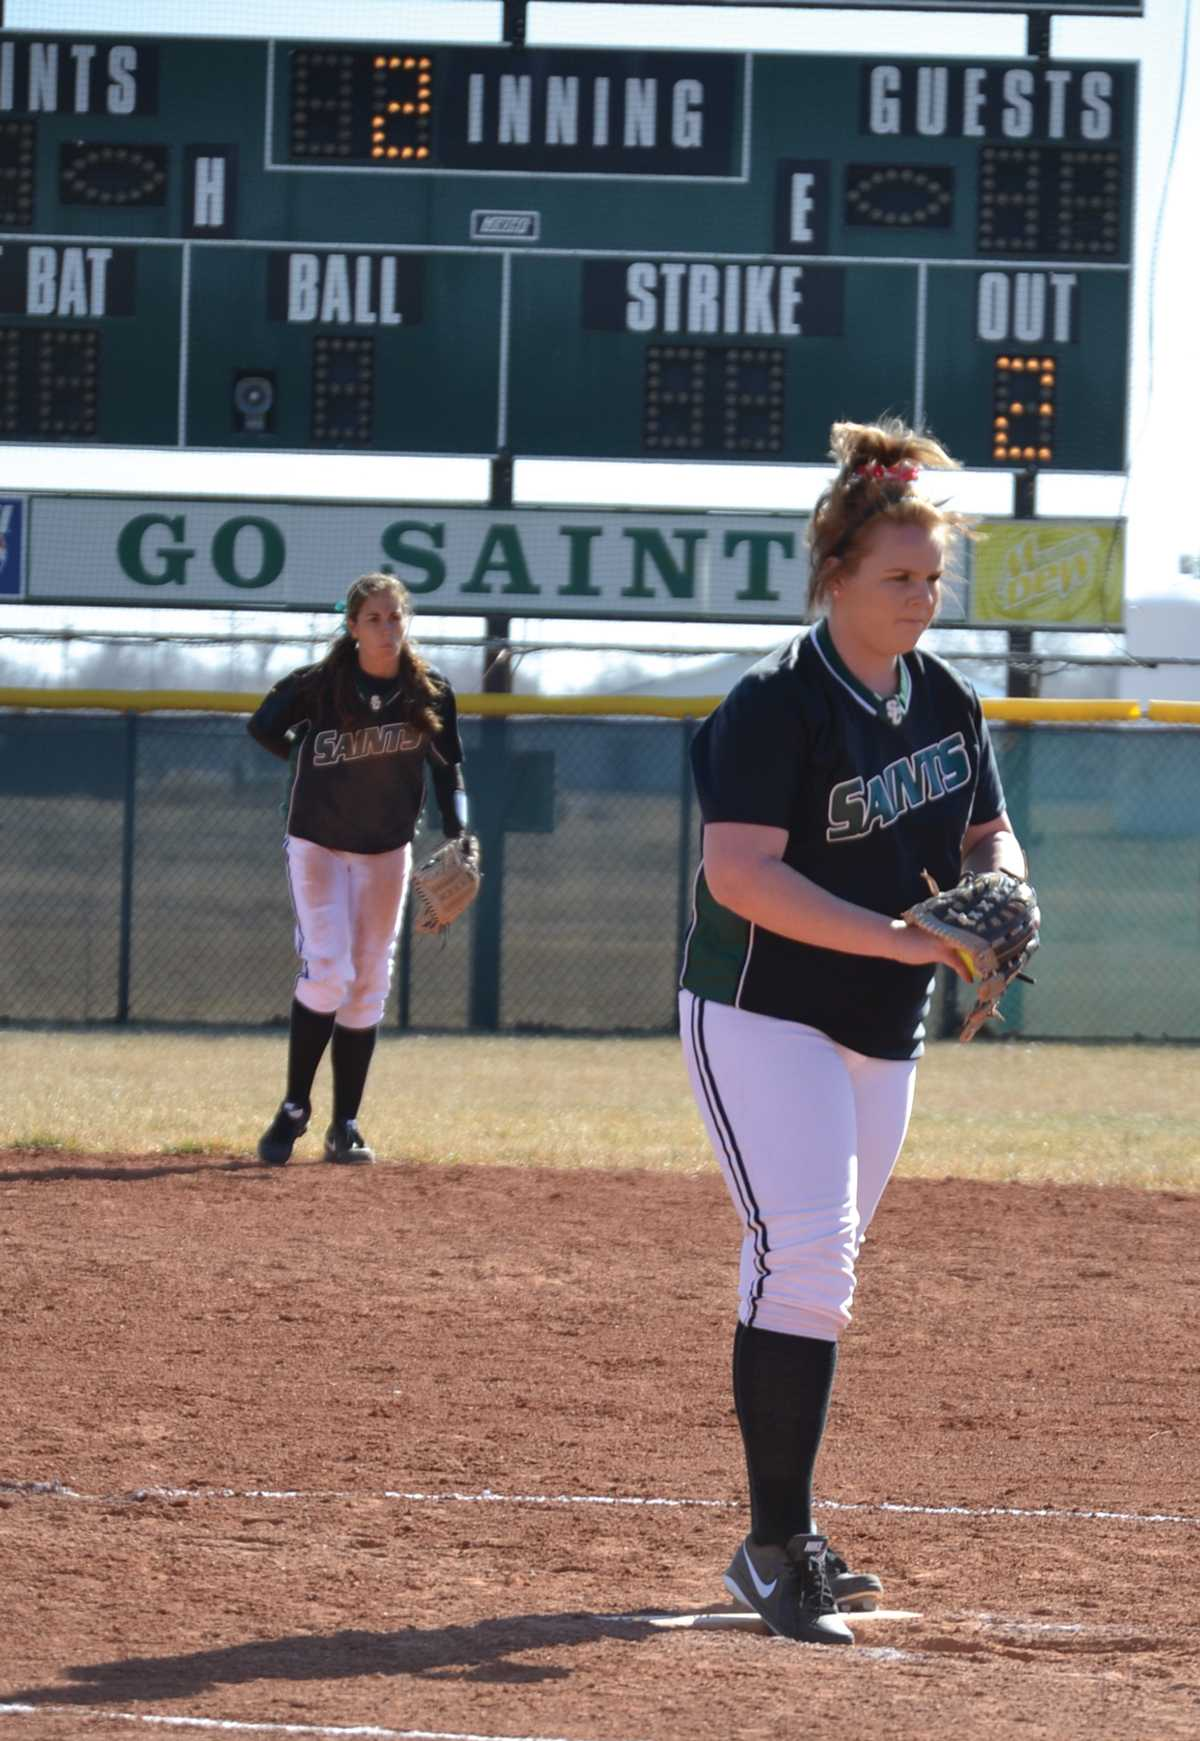 Crusader photo/Jose Medrano Brittney Sharkey prepares to pitch during the Lady Saints match against Northern Oklahoma-Tonkawa Feb. 9. Sharkey received the KJCCC Player of the Week award for the week of Feb. 10-17.